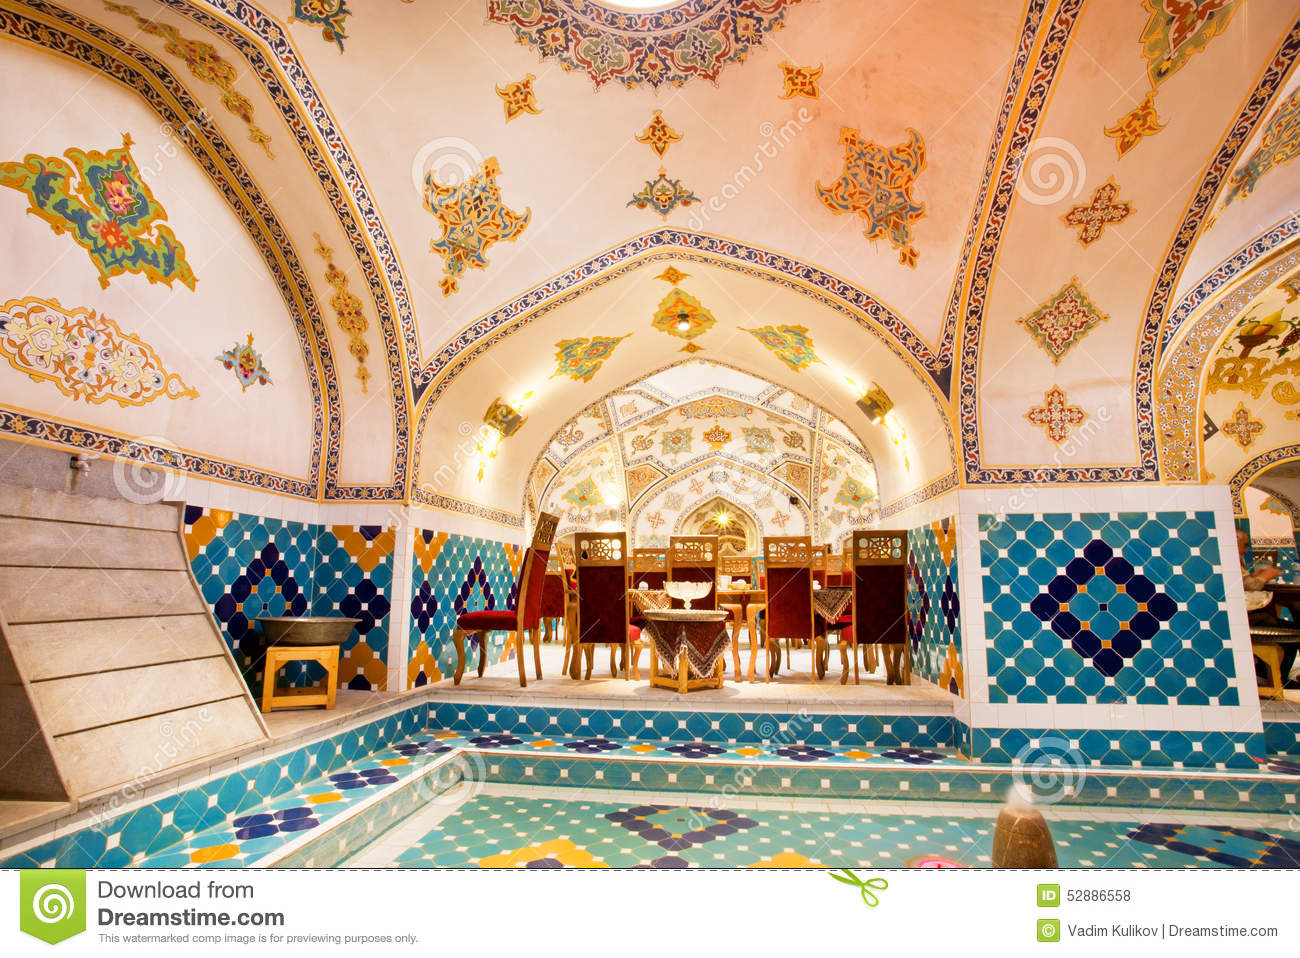 Draya Basketball Wives further Muslim Wedding Banner Background Design Hd 9162 likewise Bishops Palace Galveston Texas Is A Masterpiece Of Gilded Age Victorian Style furthermore Editorial Stock Photo Designed Walls Pool Inside Restaurant Isfahan Iran Persian Eating People Third Largest City Iran Isfahan Image52886558 further Neoclassical Interior Style The Elegance Of The 18th Century 3066. on persian style house